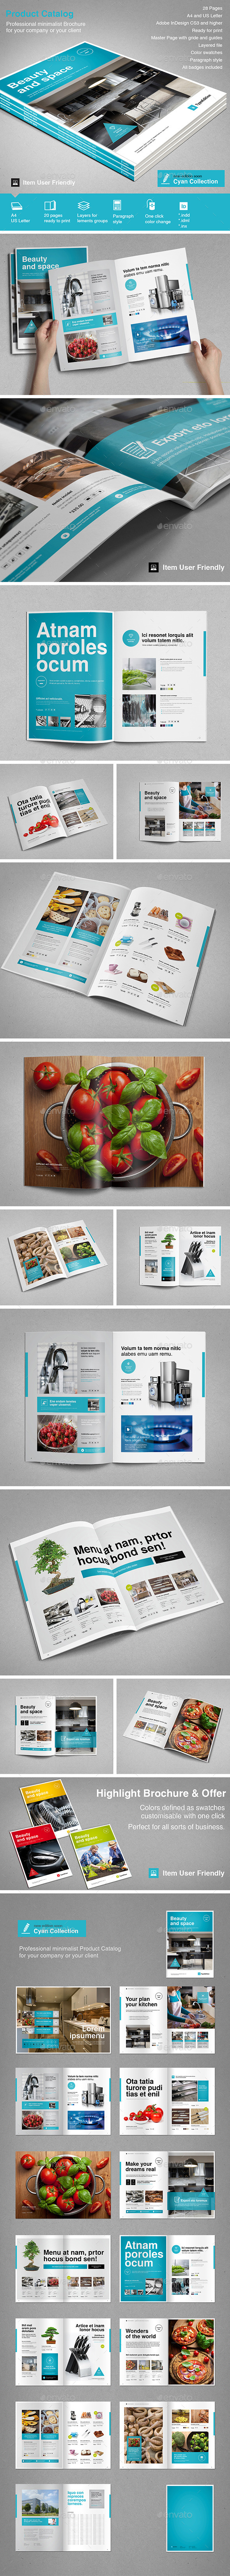 Product Catalog Templates From Graphicriver